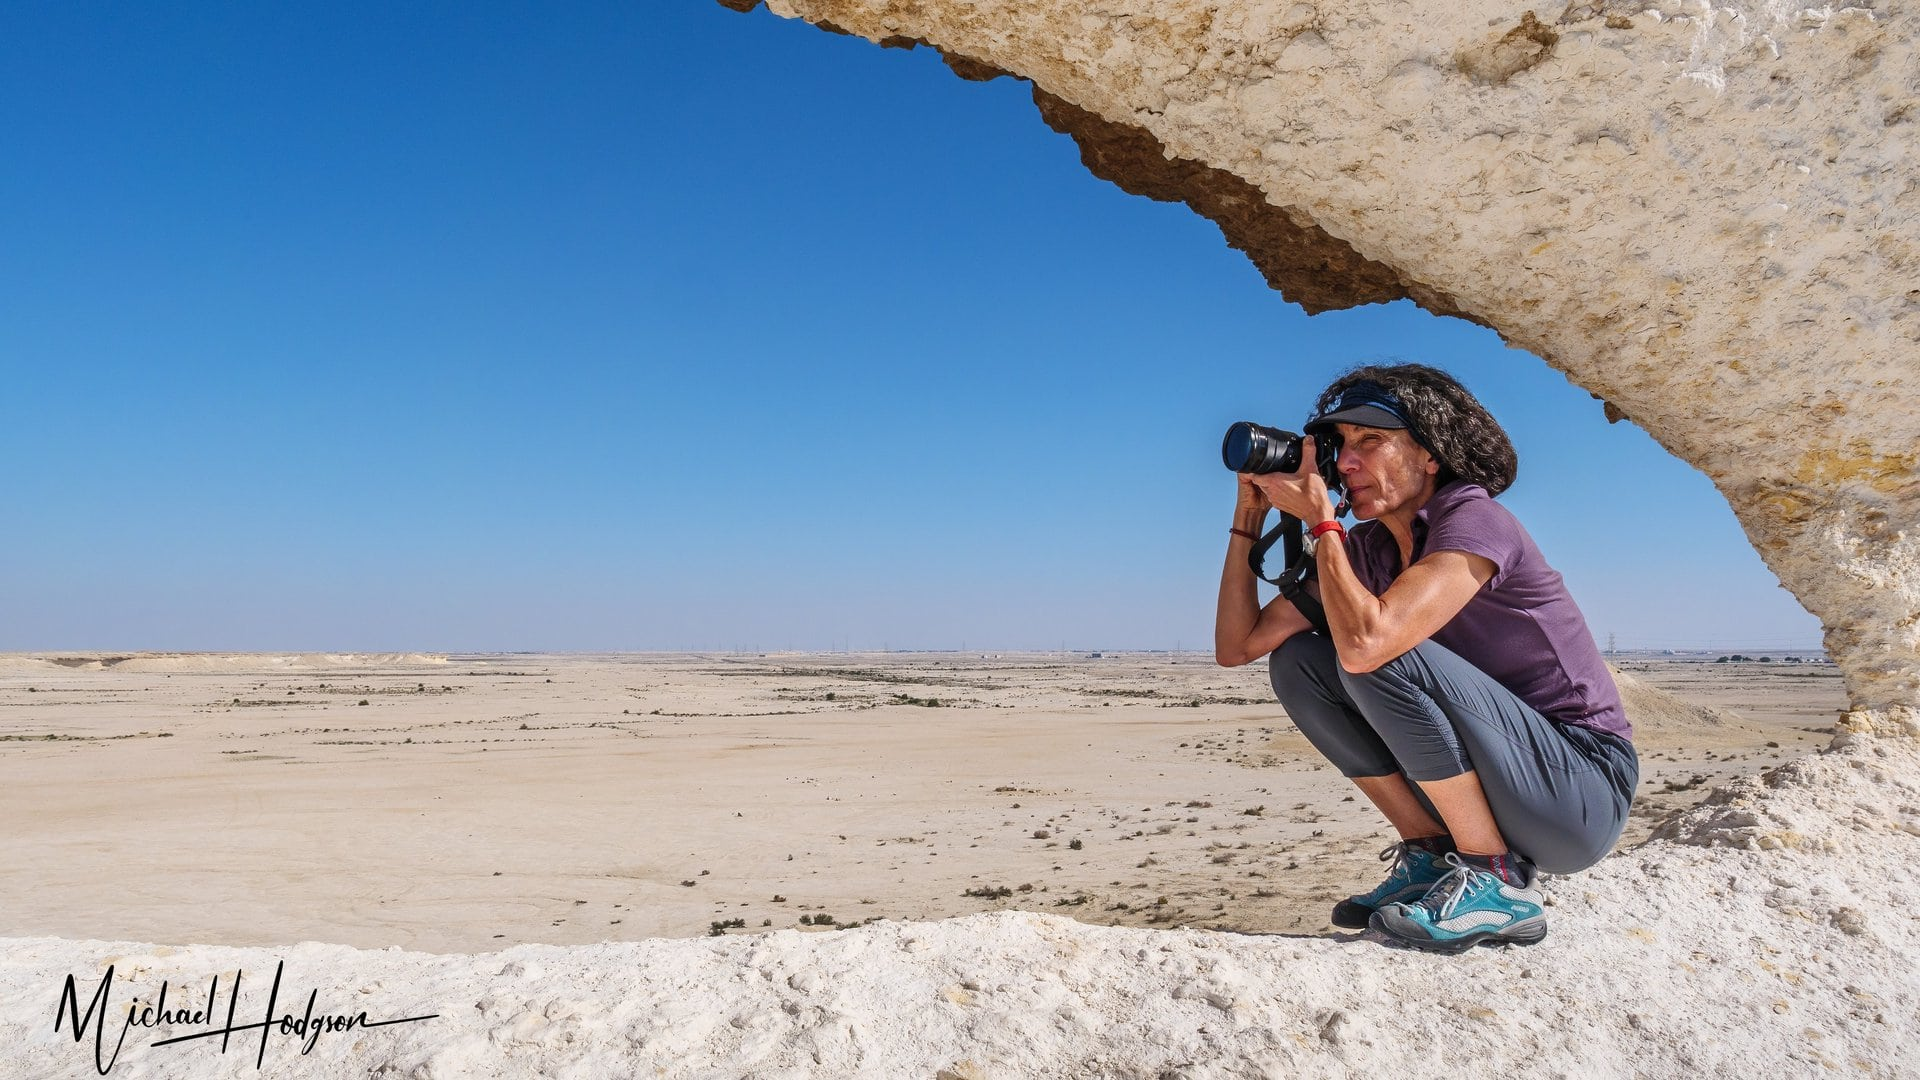 9 Essential Travel Photography Tips